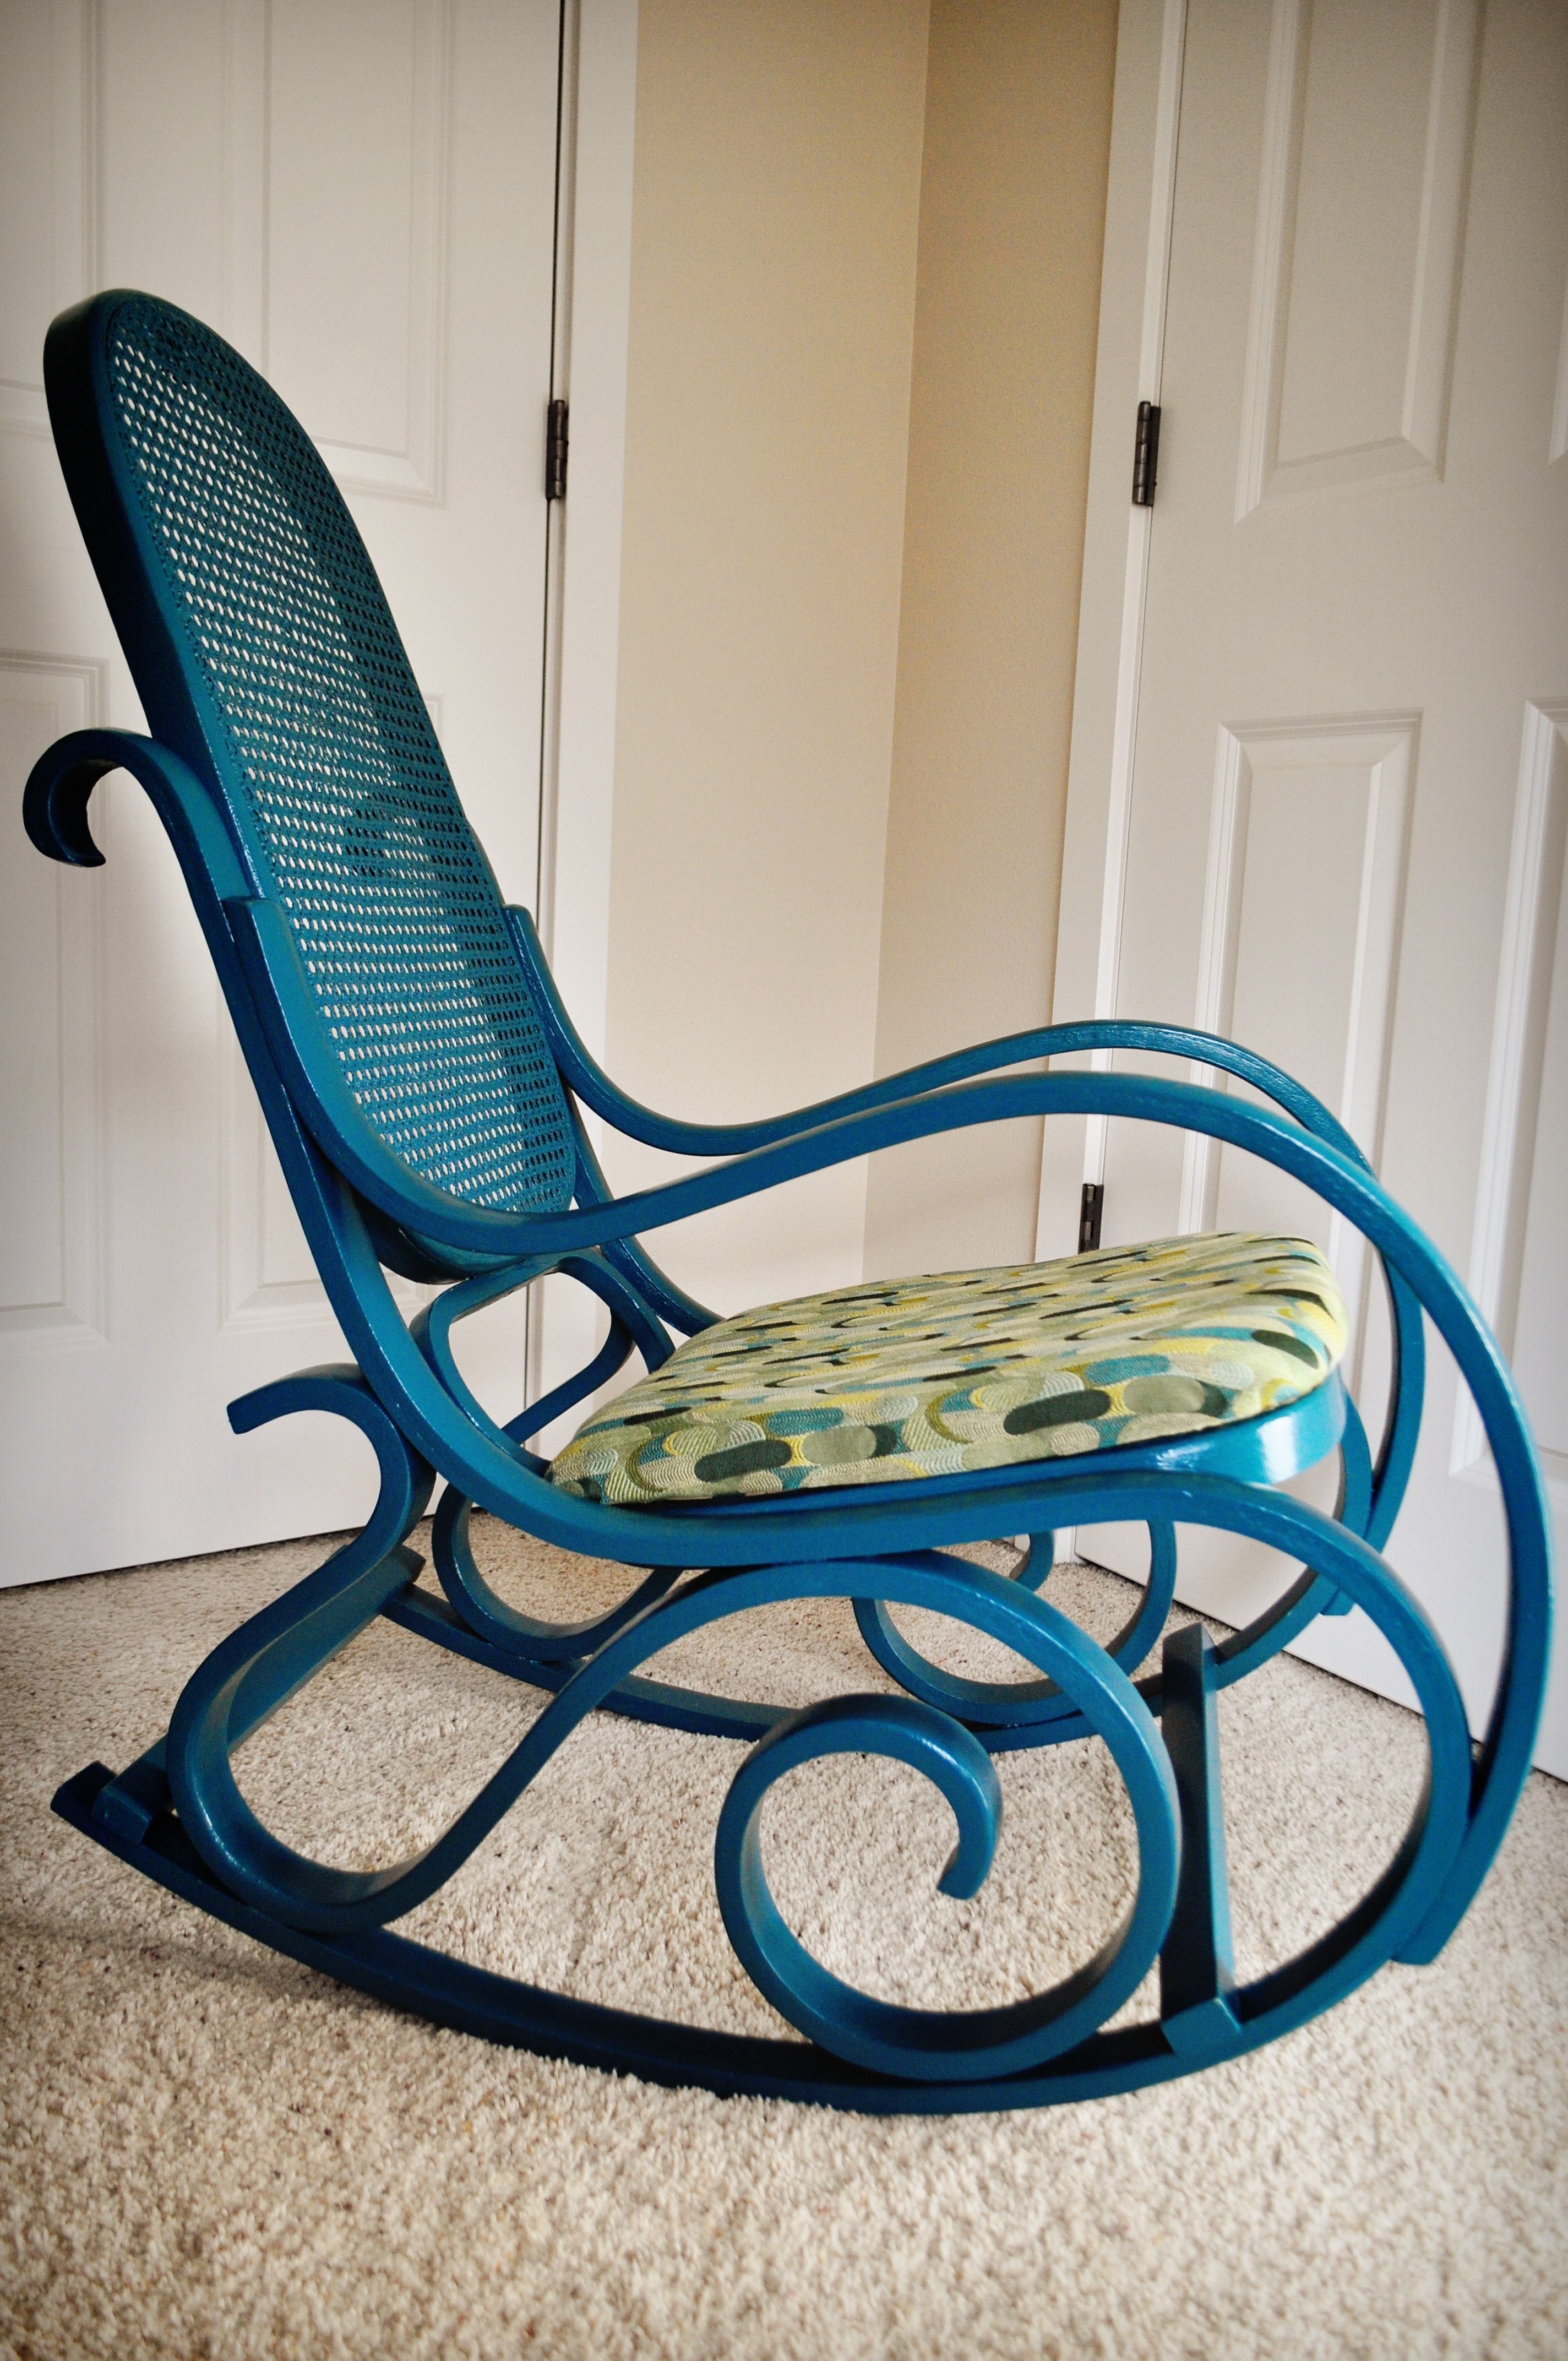 Home Intended For Stylish Intended For 2017 White Wicker Rocking Chairs (View 6 of 15)